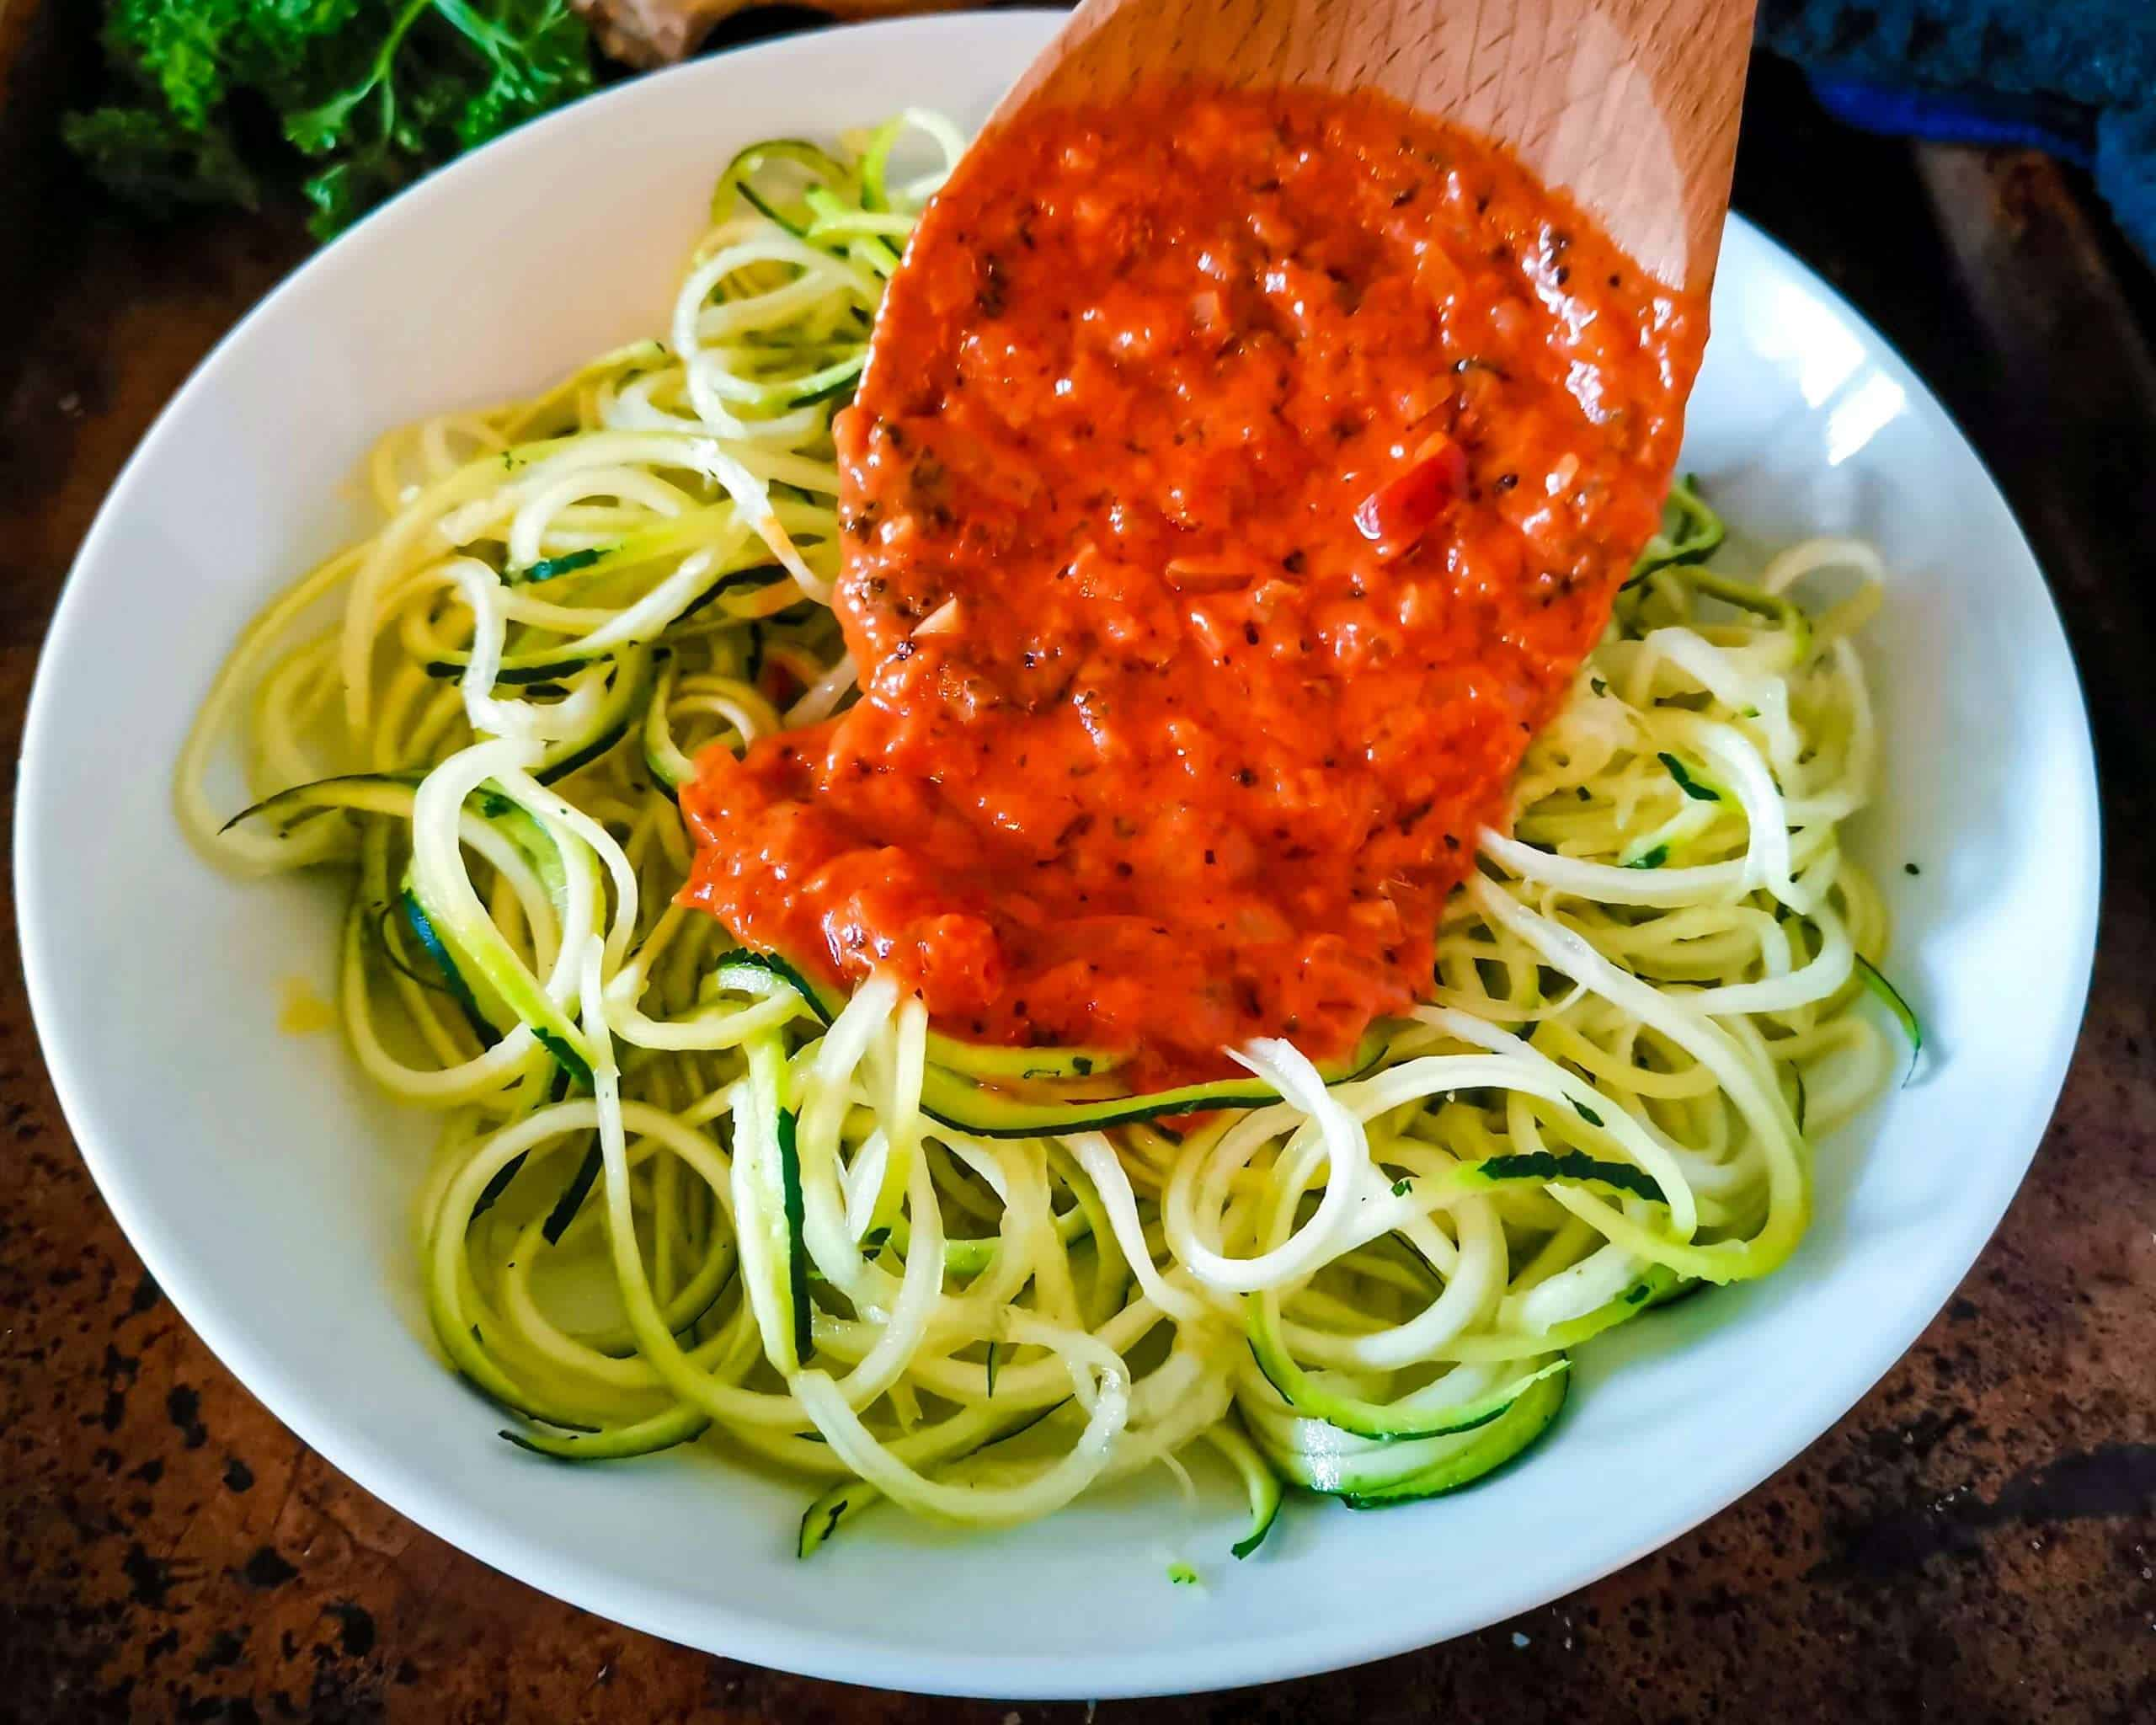 Zoodles and Low carb marinara sauce